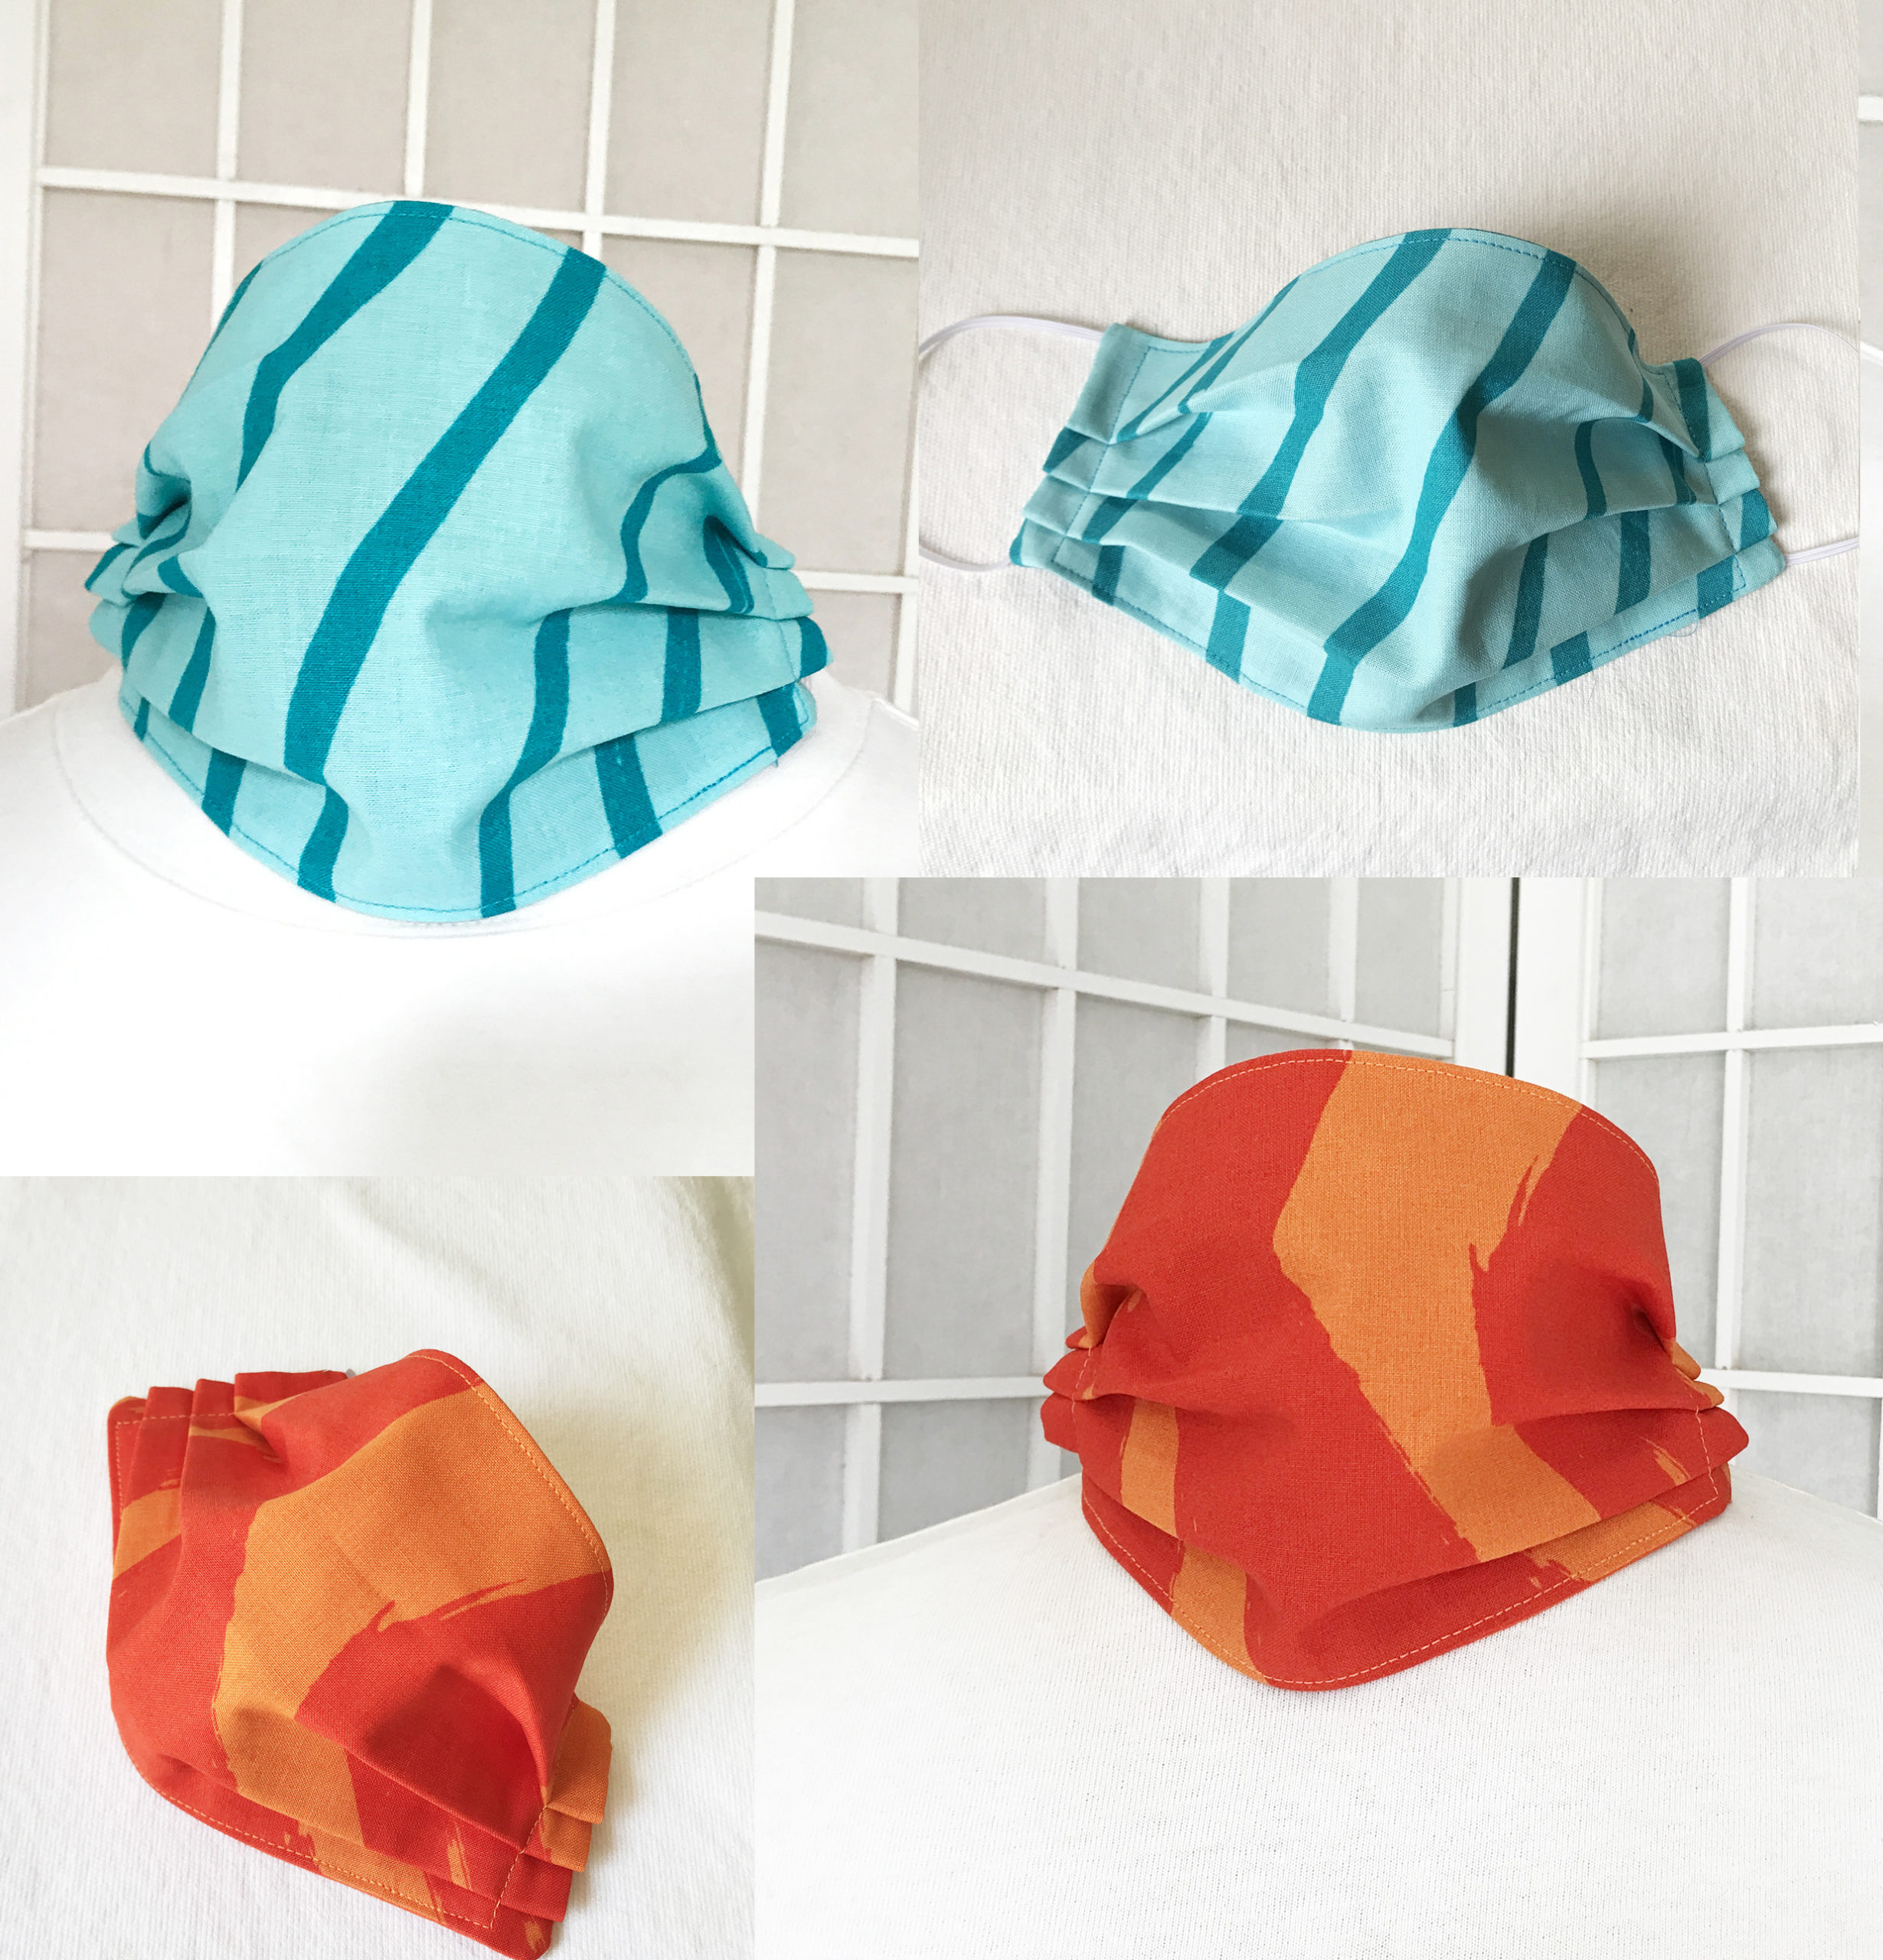 Marimekko fabric face mask Silkkikuikka blue or orange wave